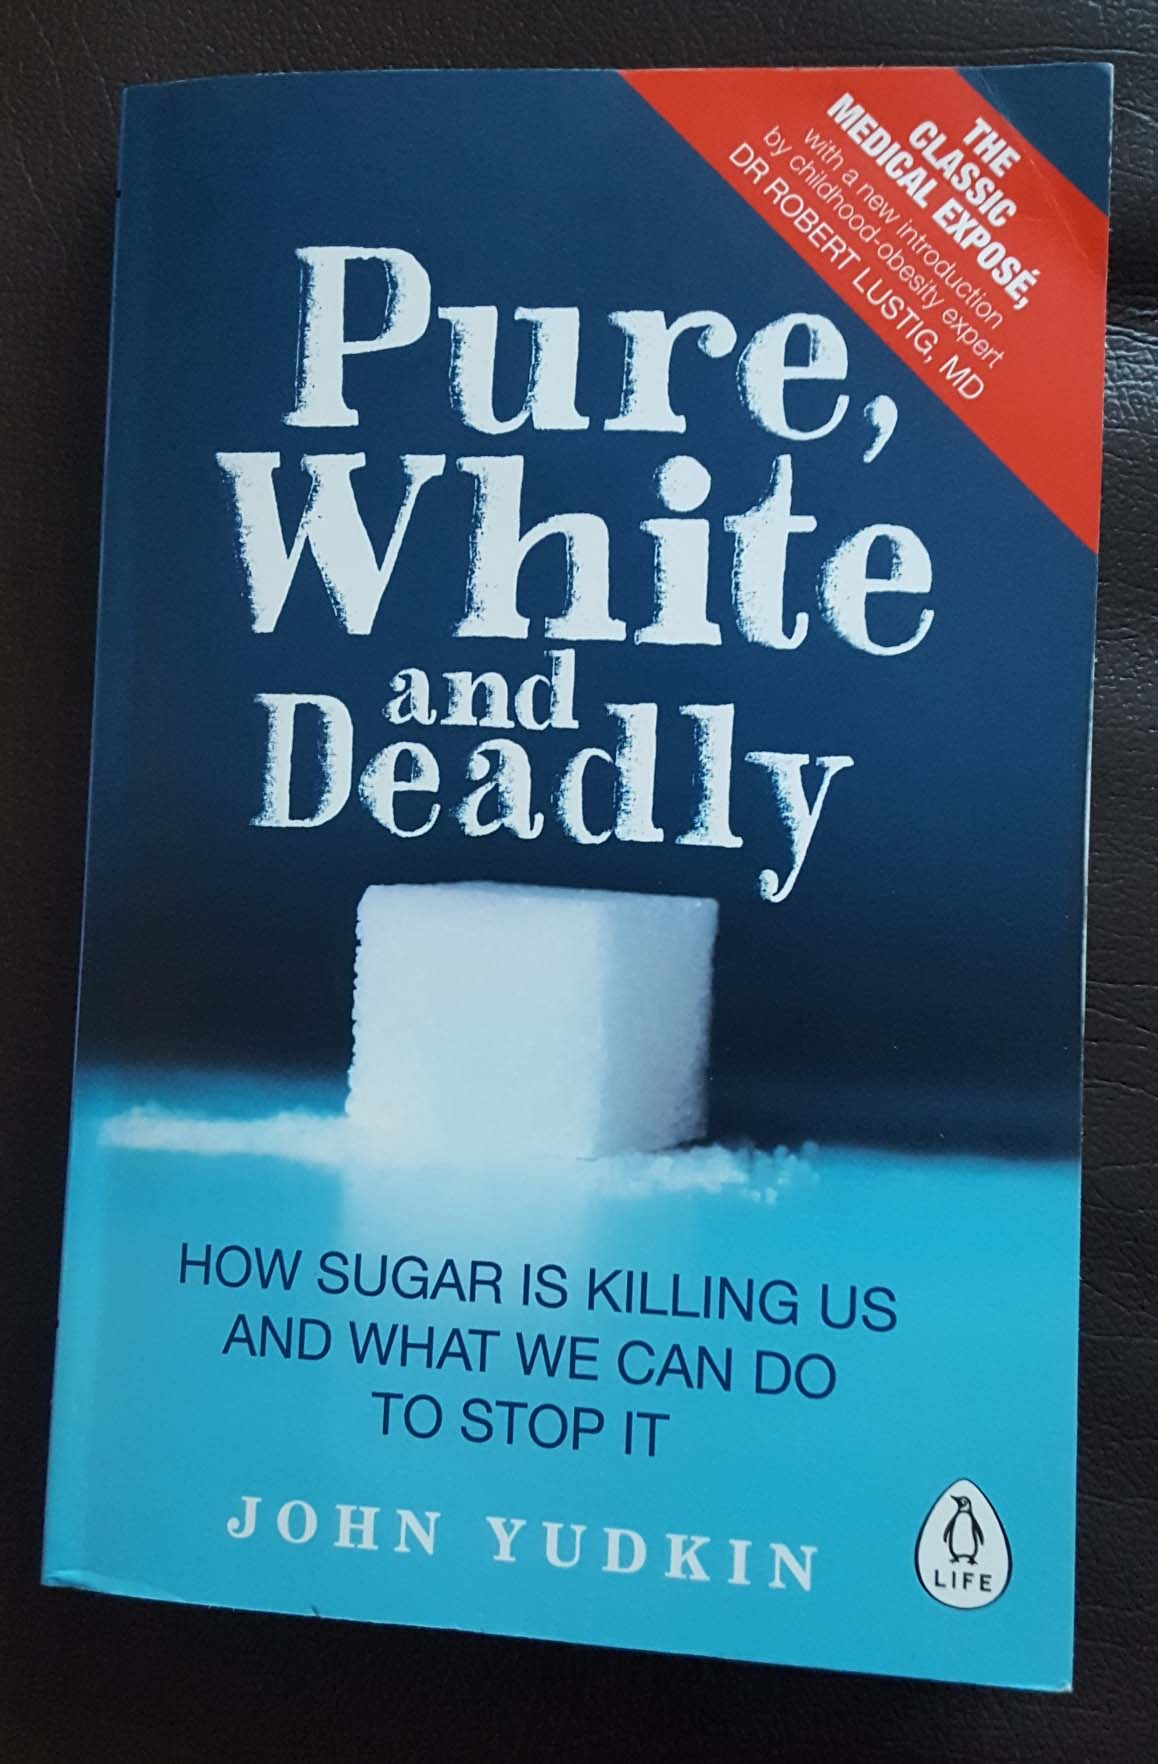 pure white deadly